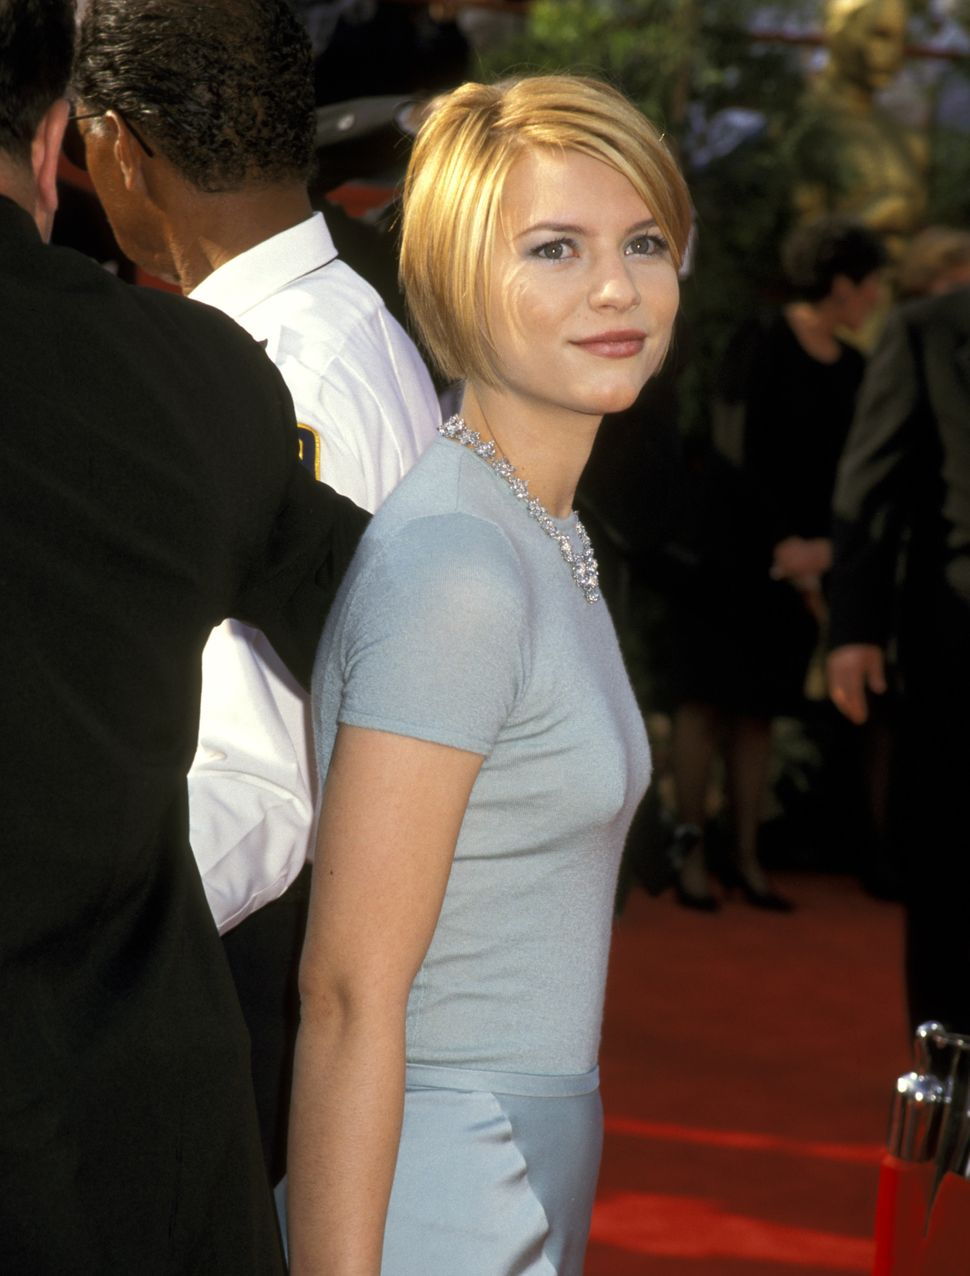 Claire Danes at the 69th annual Academy Awards in 1997.